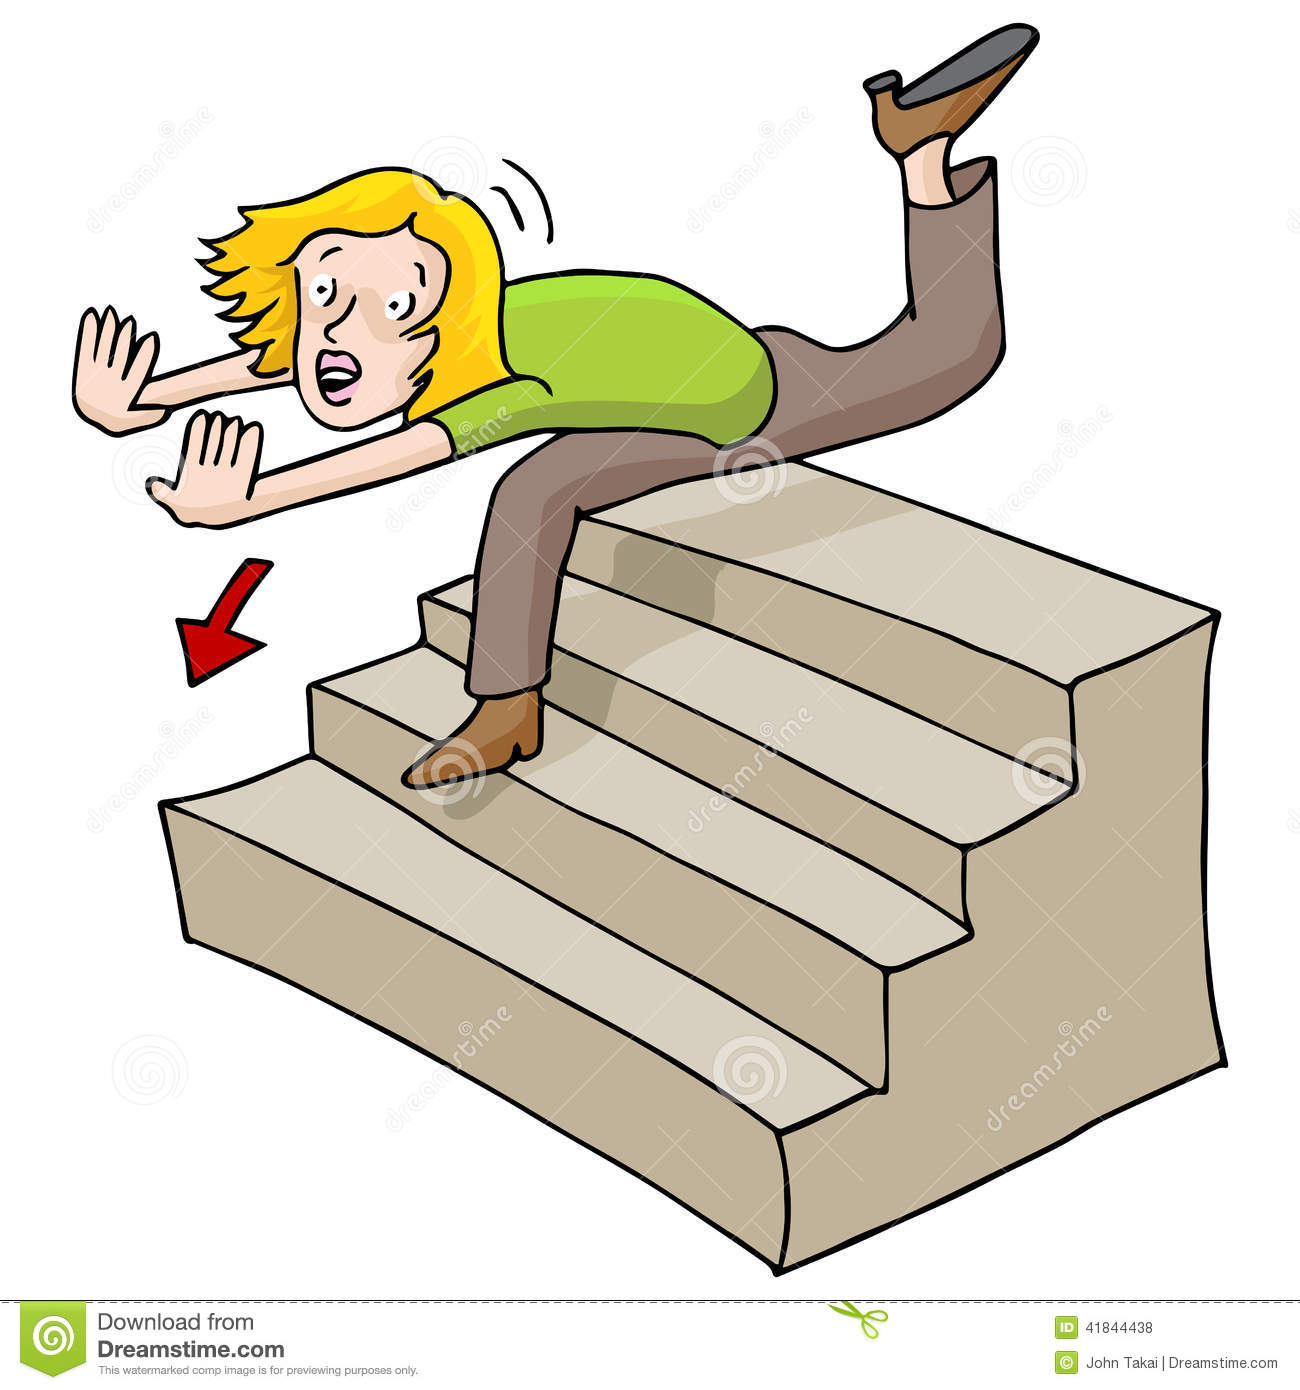 Stairs Fall Down Slices 3oEdv2YXXWYTxg1yEM moreover Whos Stunning Samsoche S son Dancing For Now together with Mother Daughter Falling Fire Escape 1975 as well Watch as well Yep This Is Pretty Much A Big Ol Nightmare. on woman falling down stairs